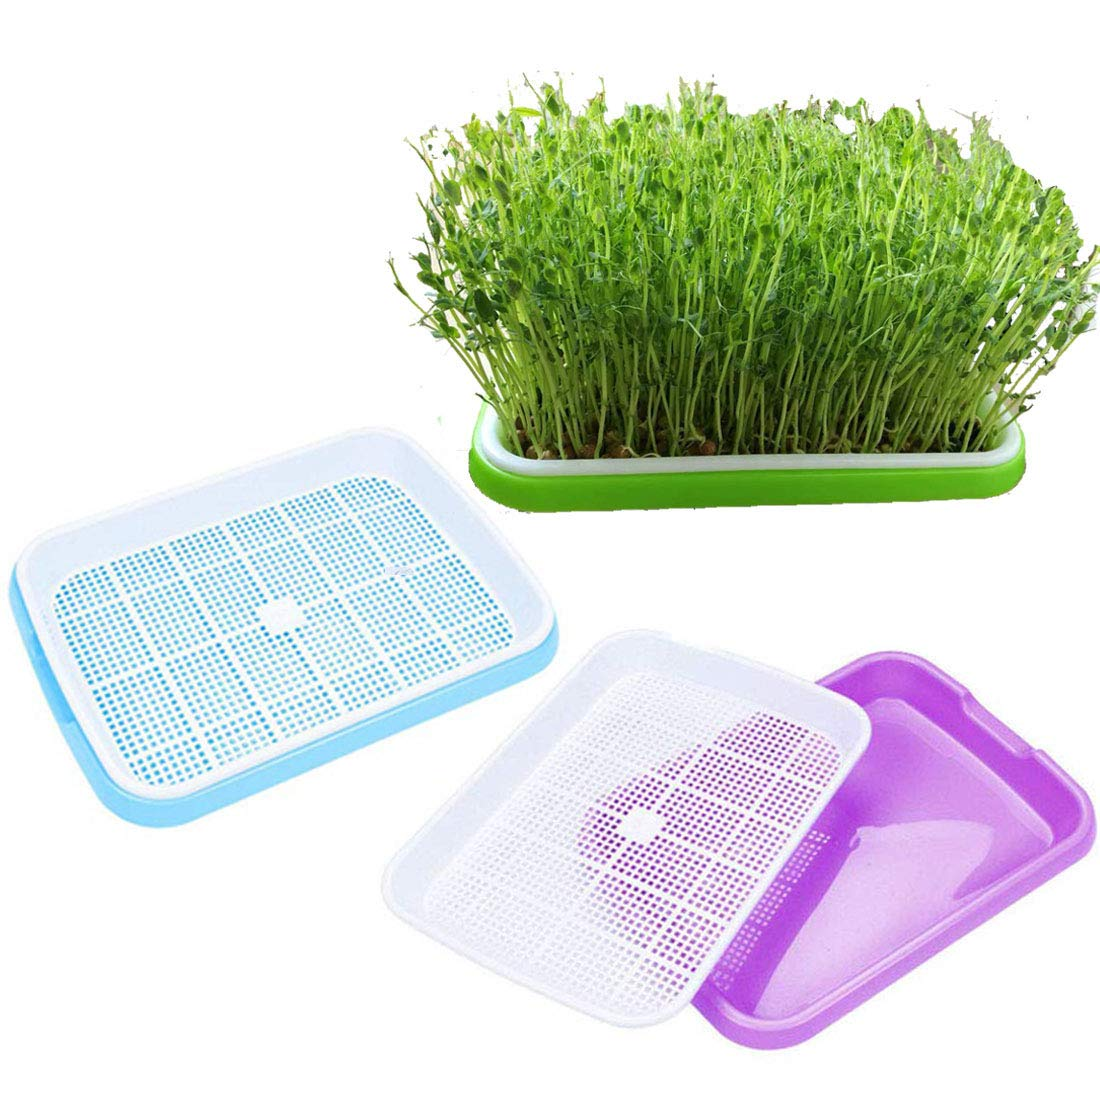 3 Pack Seed Sprouter Tray, Seed Germination Tray BPA Free Nursery Tray for Seedling Planting Garden Wheat Hydroponics by OYSIR